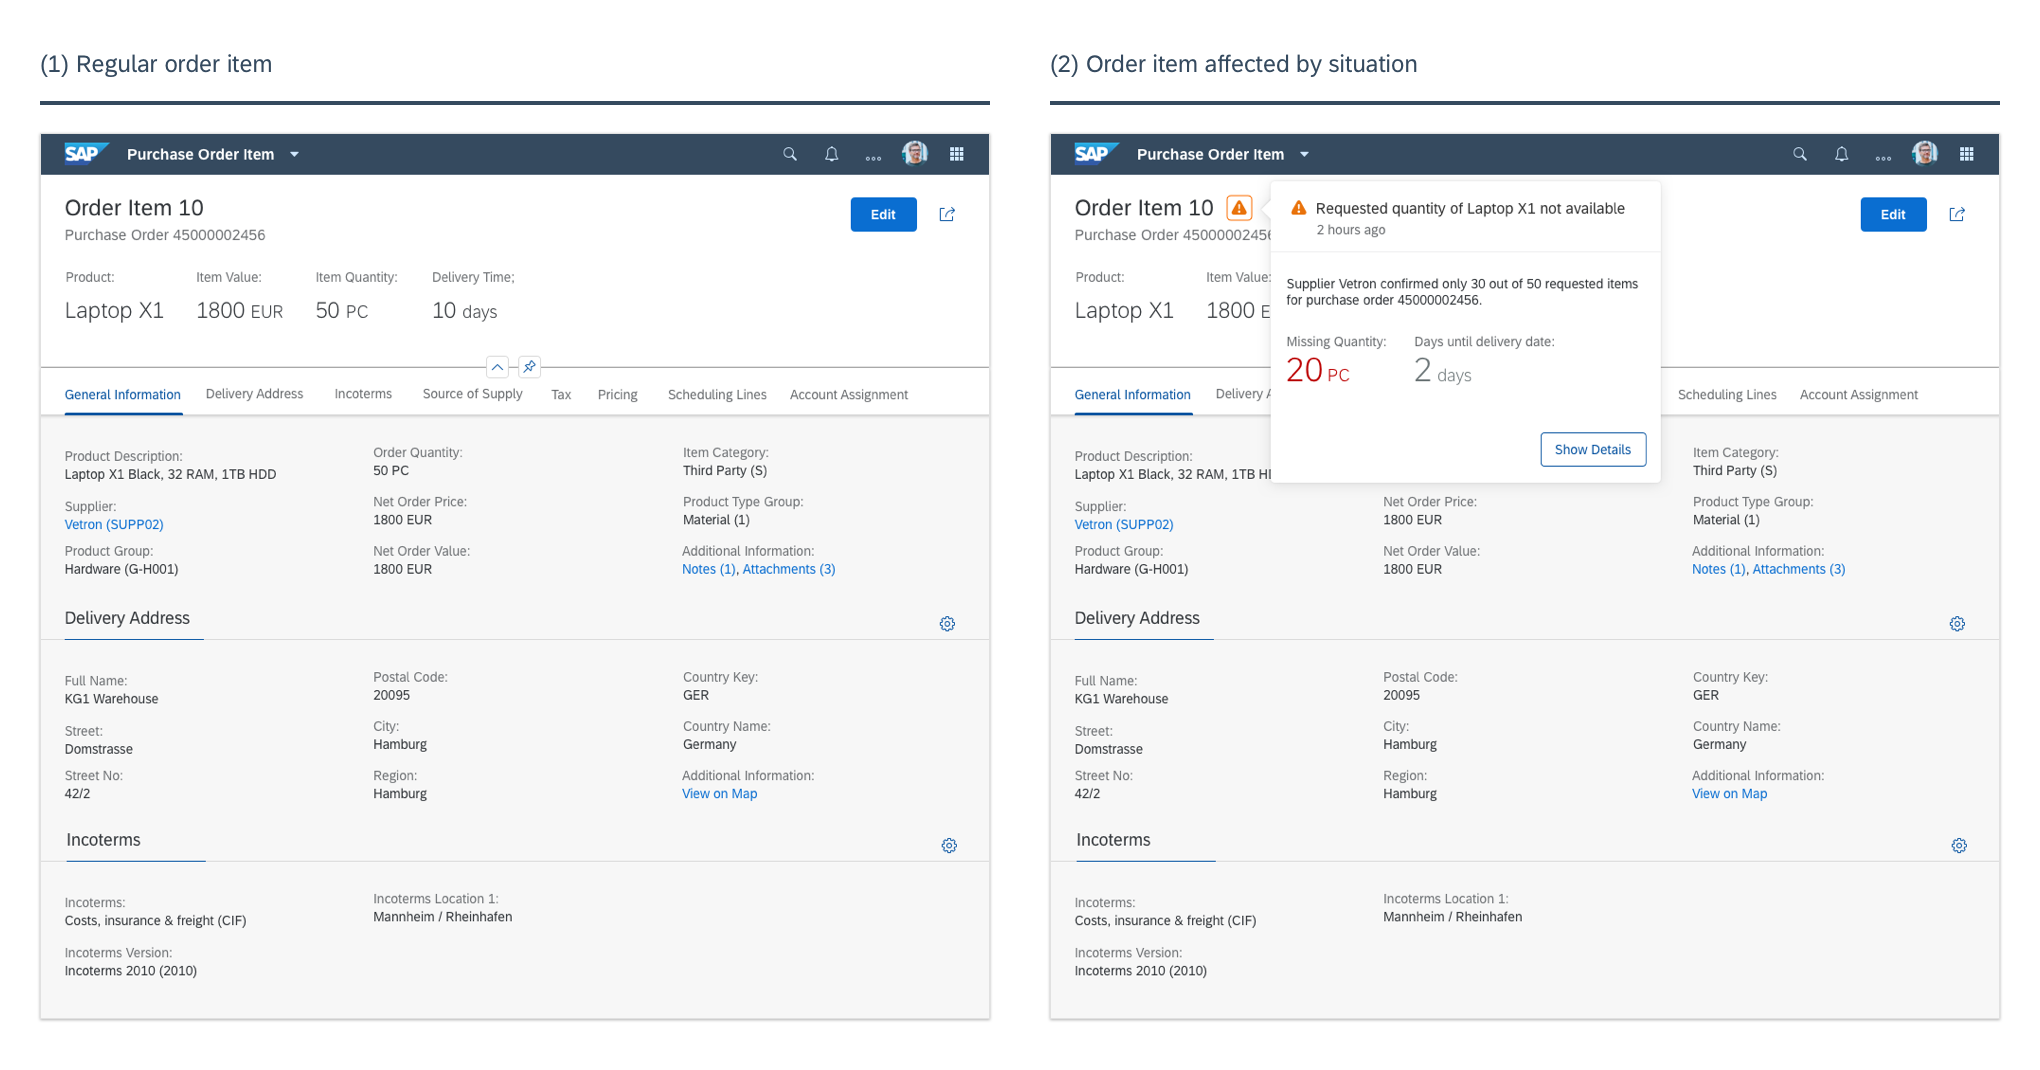 Design exploration—Purchase order item screens with and without situation indicator (Copyright: SAP SE)